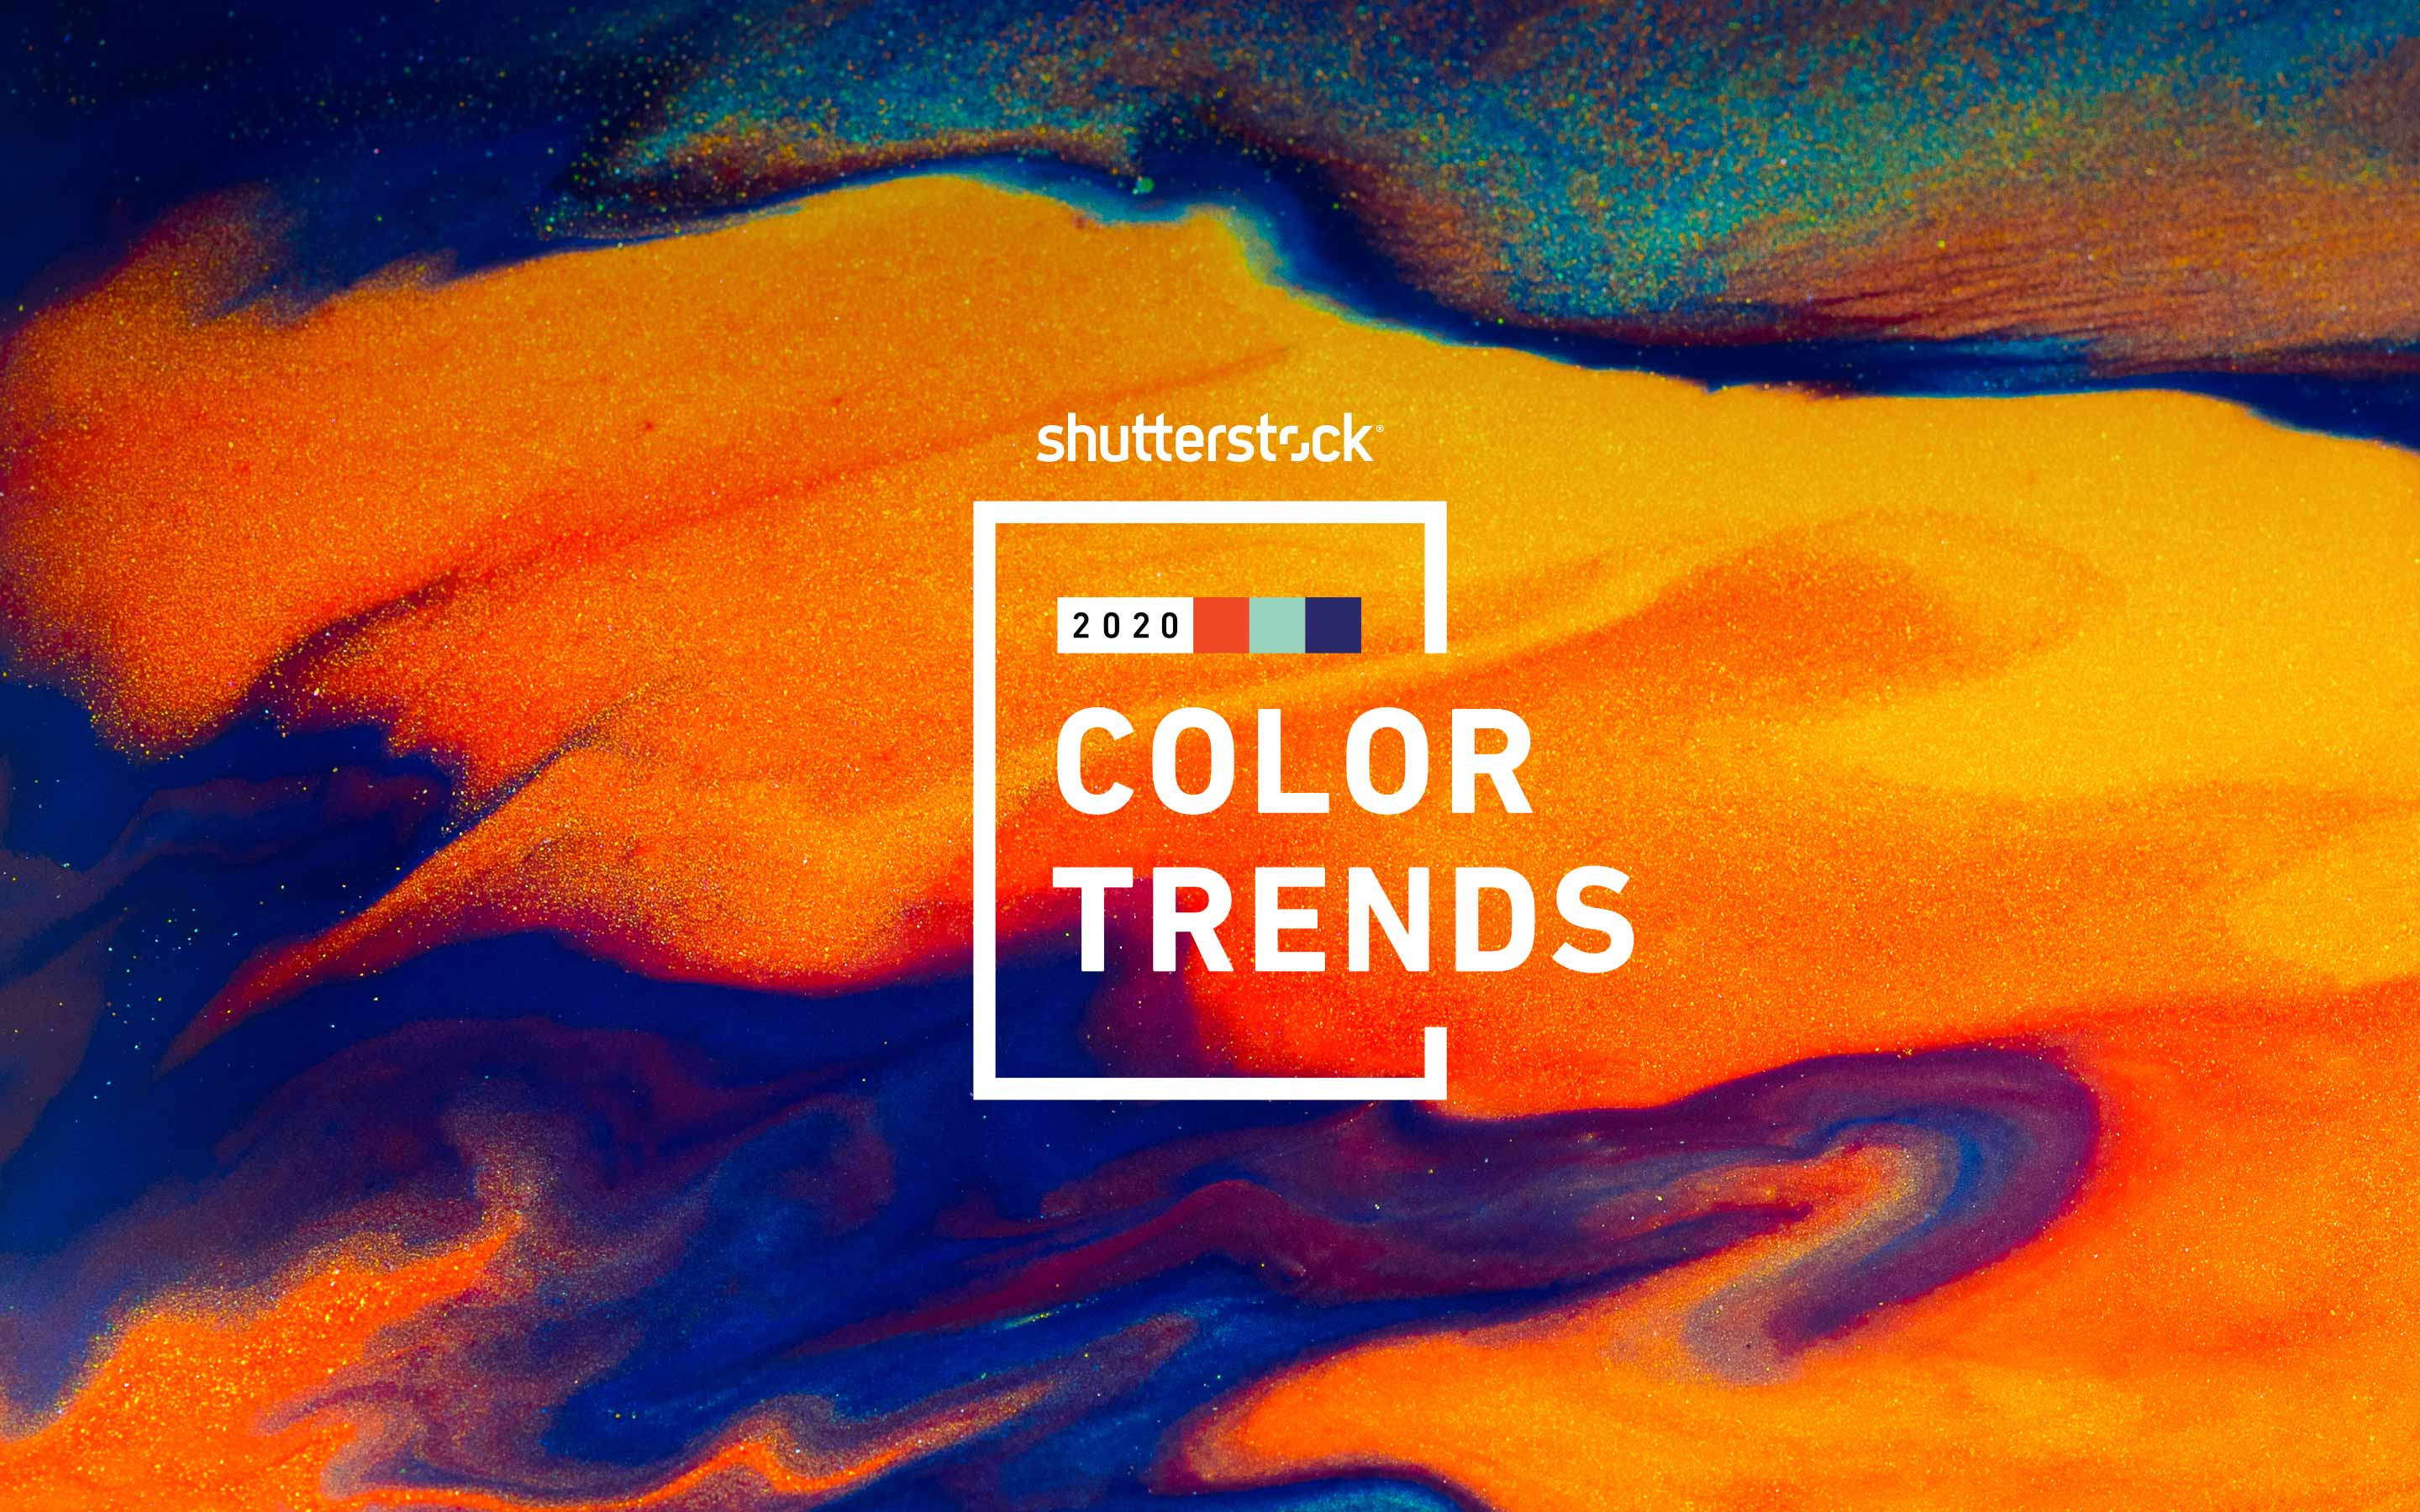 Color Trends 2020 See The Spectrum Shutterstock